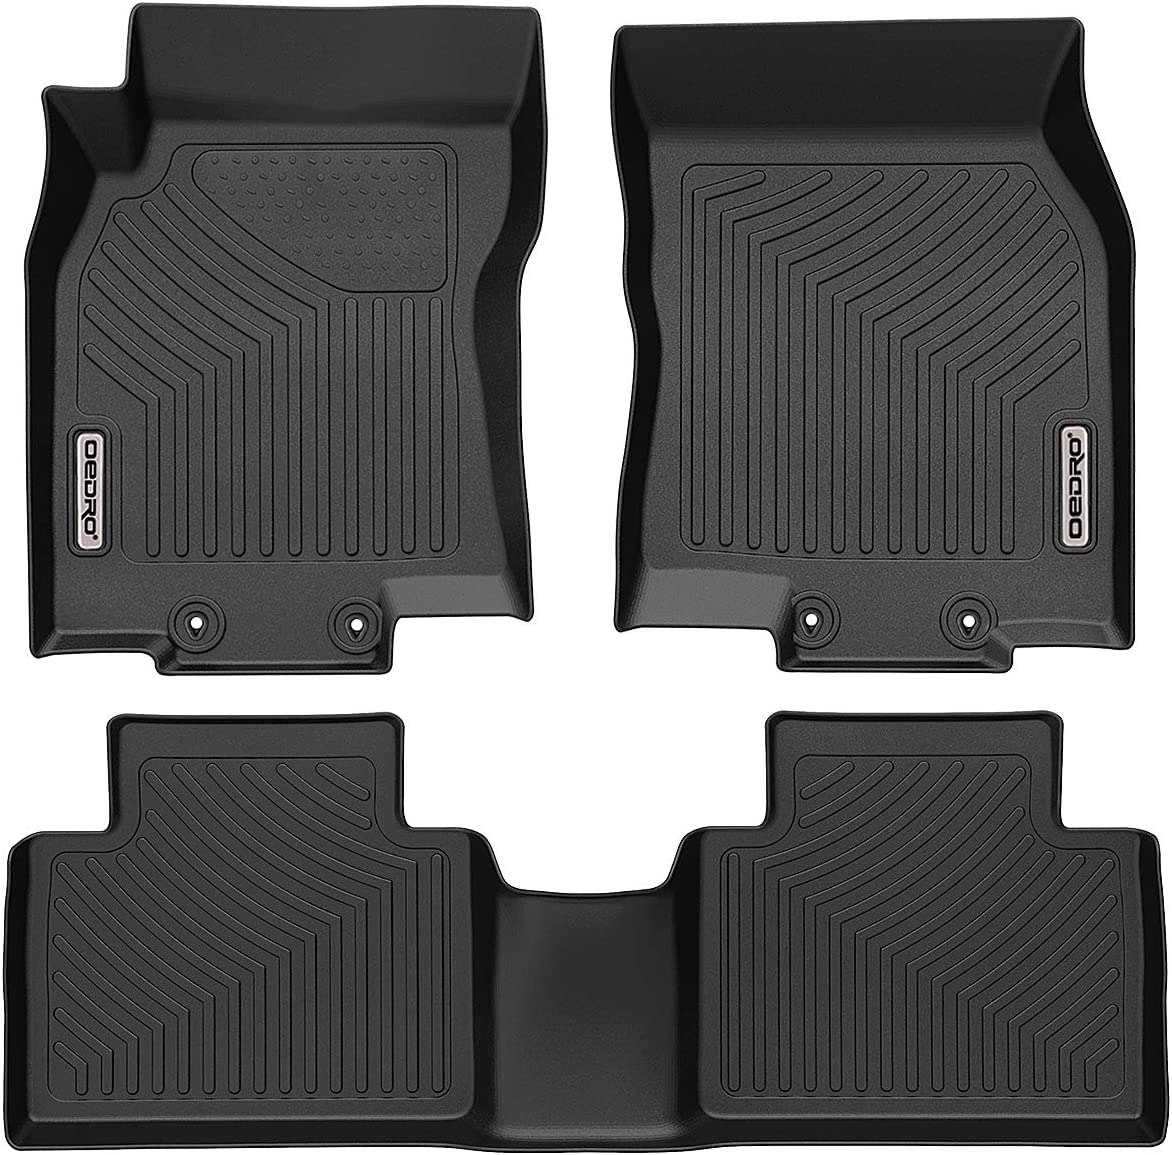 OEDRO Floor Mats Compatible Now Dealing full price reduction on sale for Unique B 2014-2020 Rogue Nissan